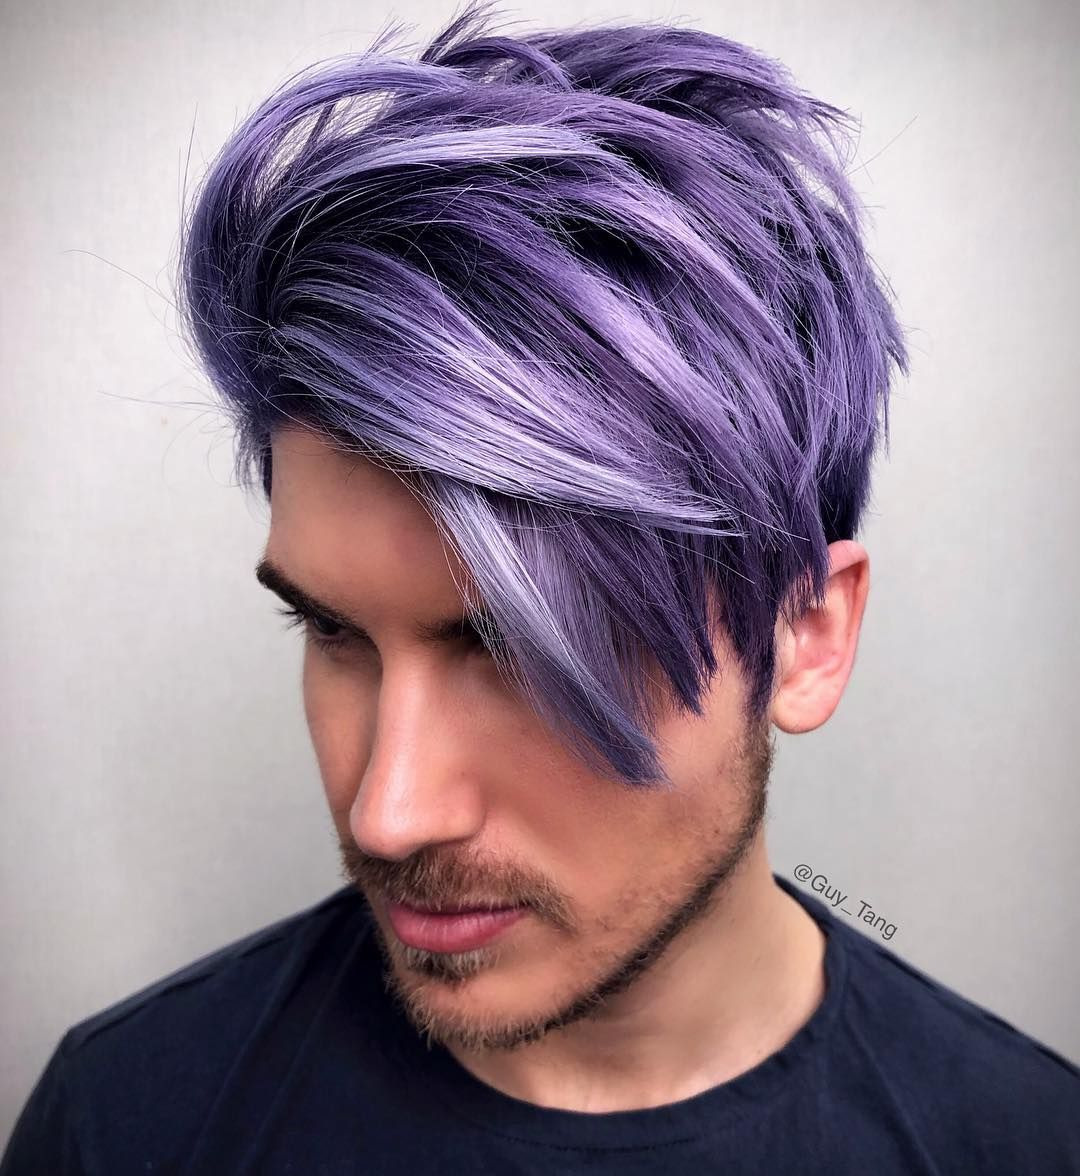 13 7k Likes 219 Comments Guy Tang Guy Tang On Instagram Boys Like To Have Fun Too Who Likes To Hav Men Hair Color Dyed Hair Men Hair And Beard Styles